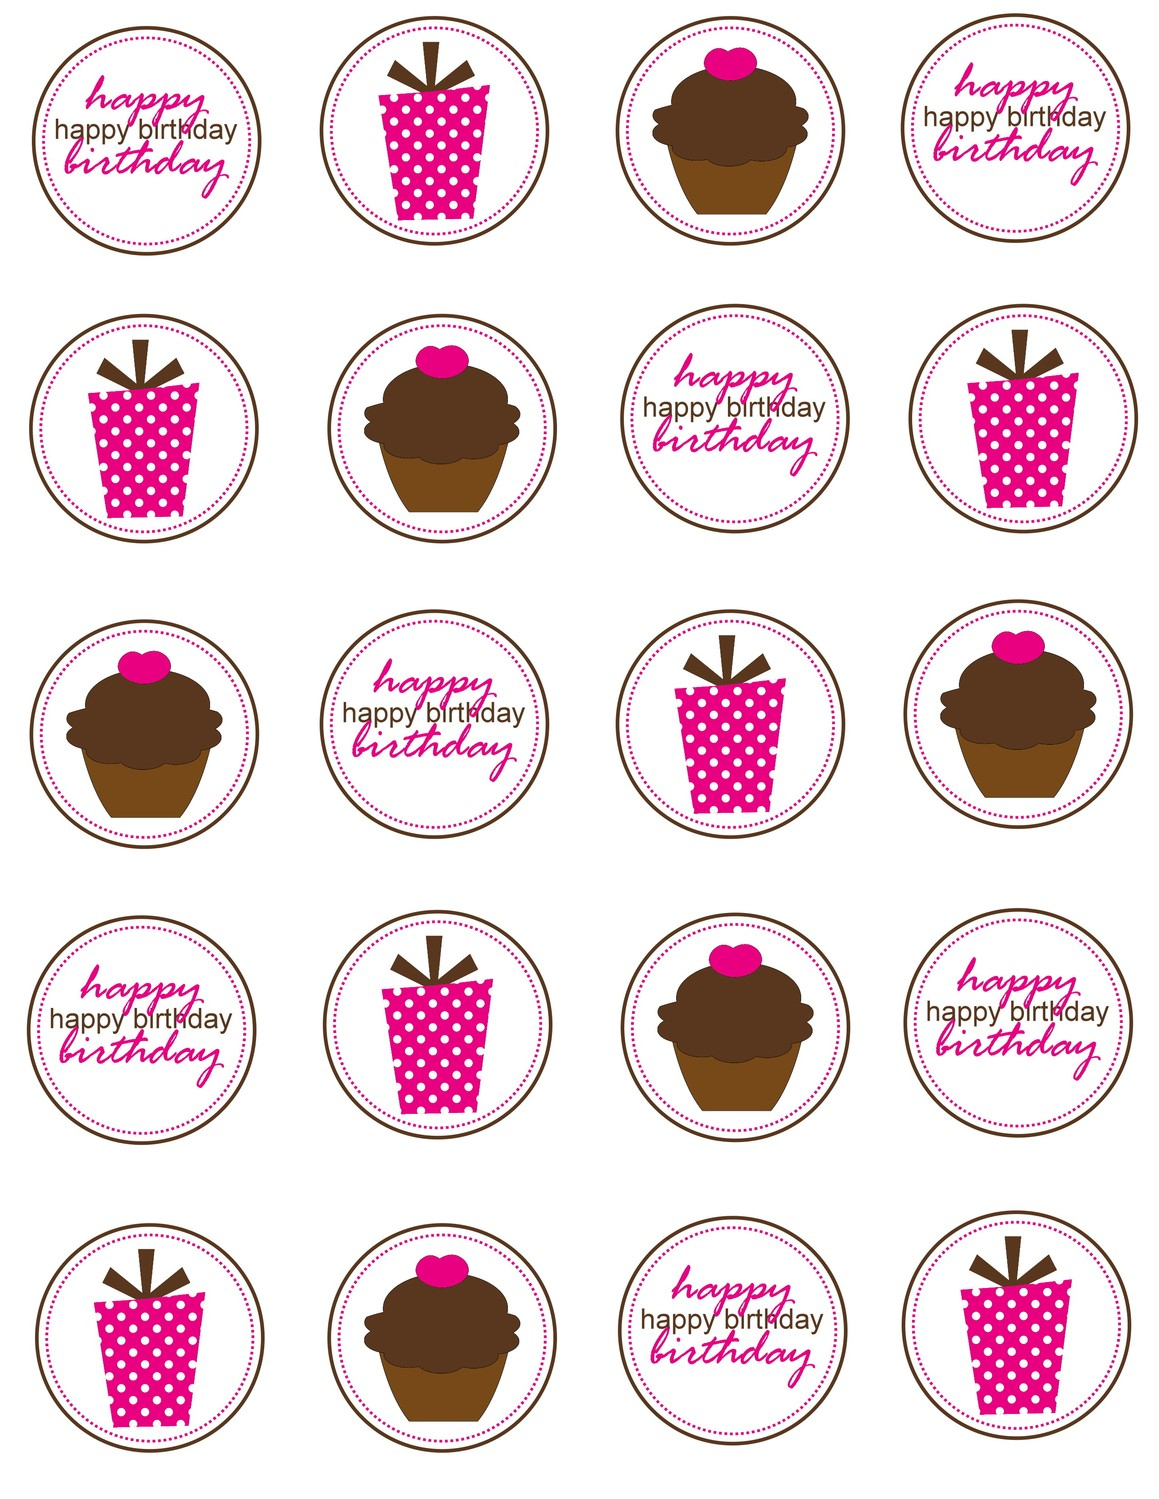 8 Cupcakes Ring Toppers Printables Photo - Diamond Ring Drink Tags - Free Printable Cupcake Toppers